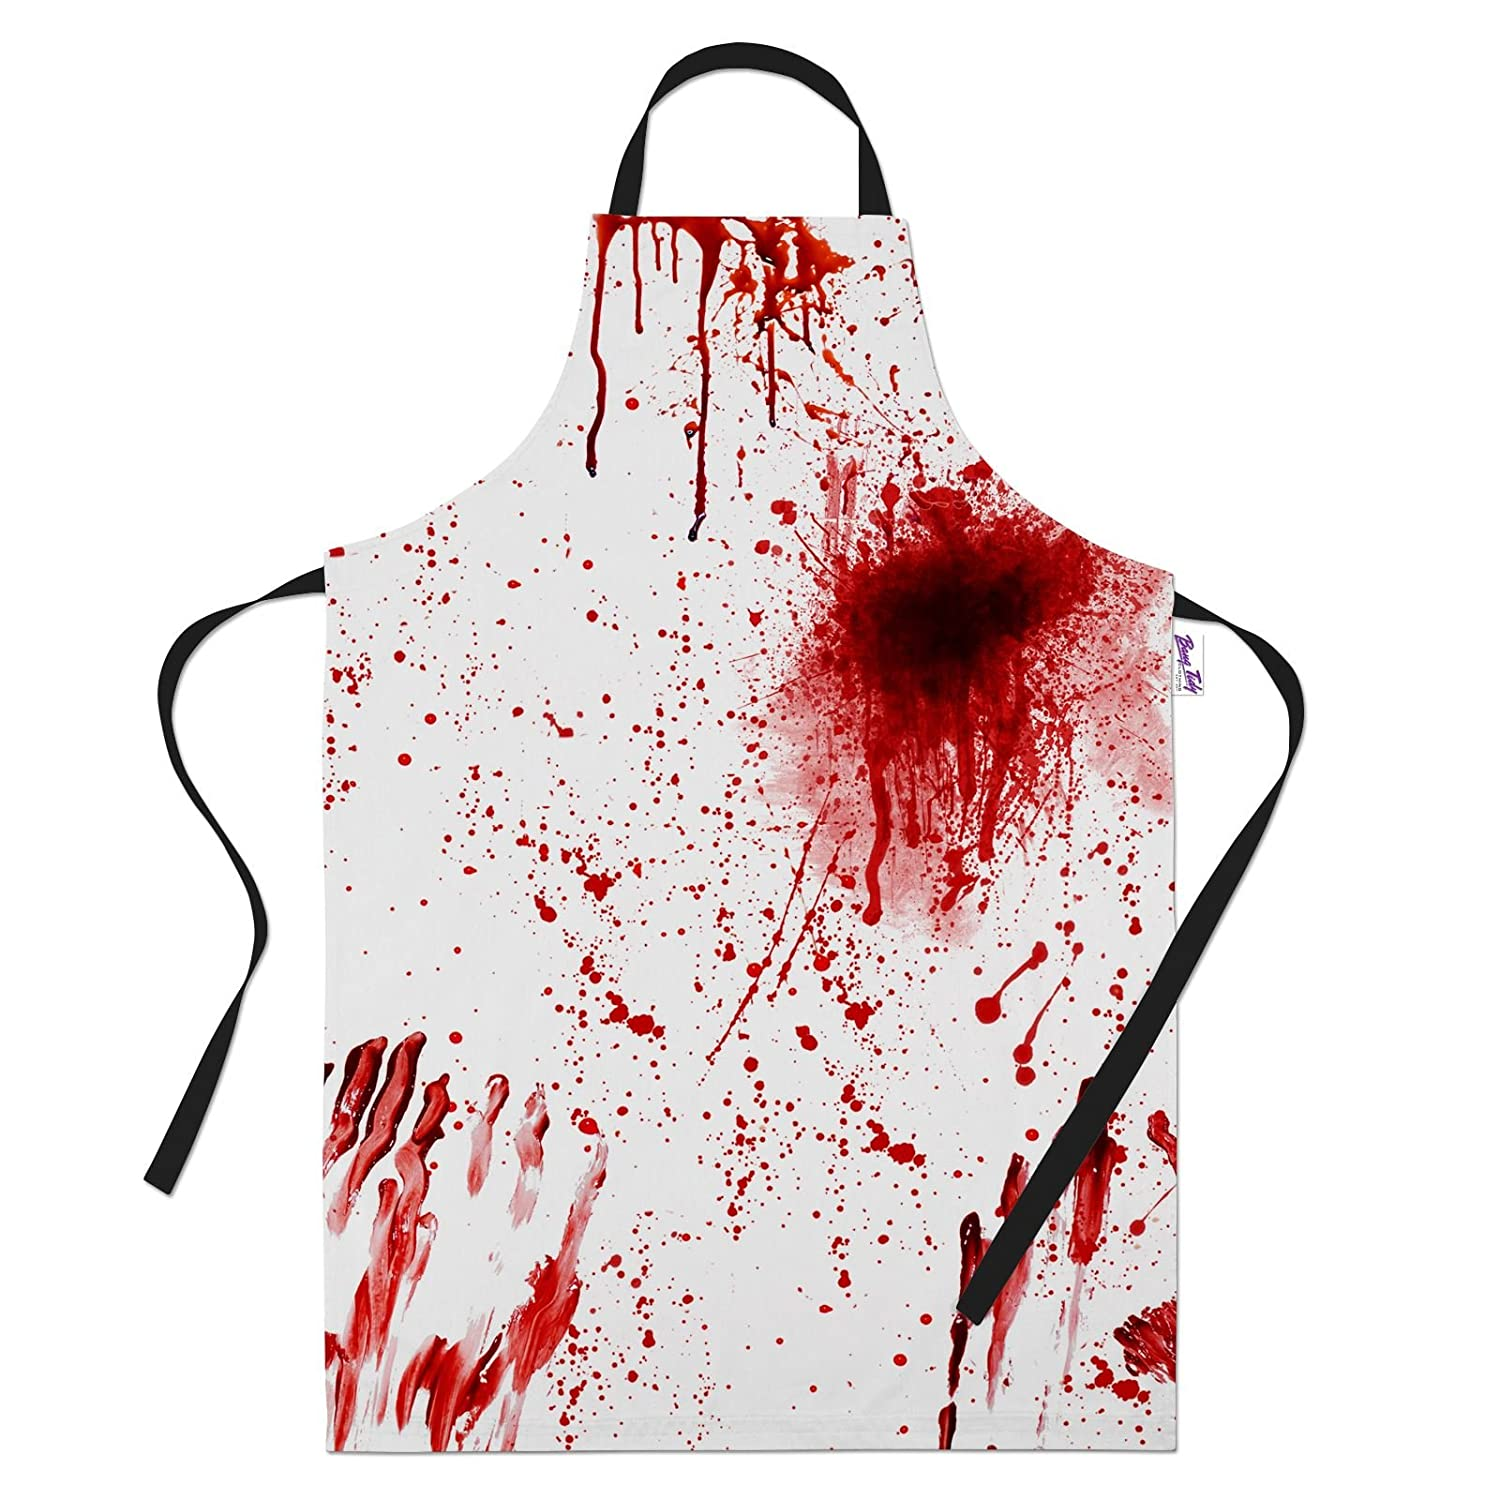 BBQ Apron Halloween Costume Bloody Butcher Novelty Aprons Cooking Gifts for Men BANG TIDY CLOTHING VH1294P